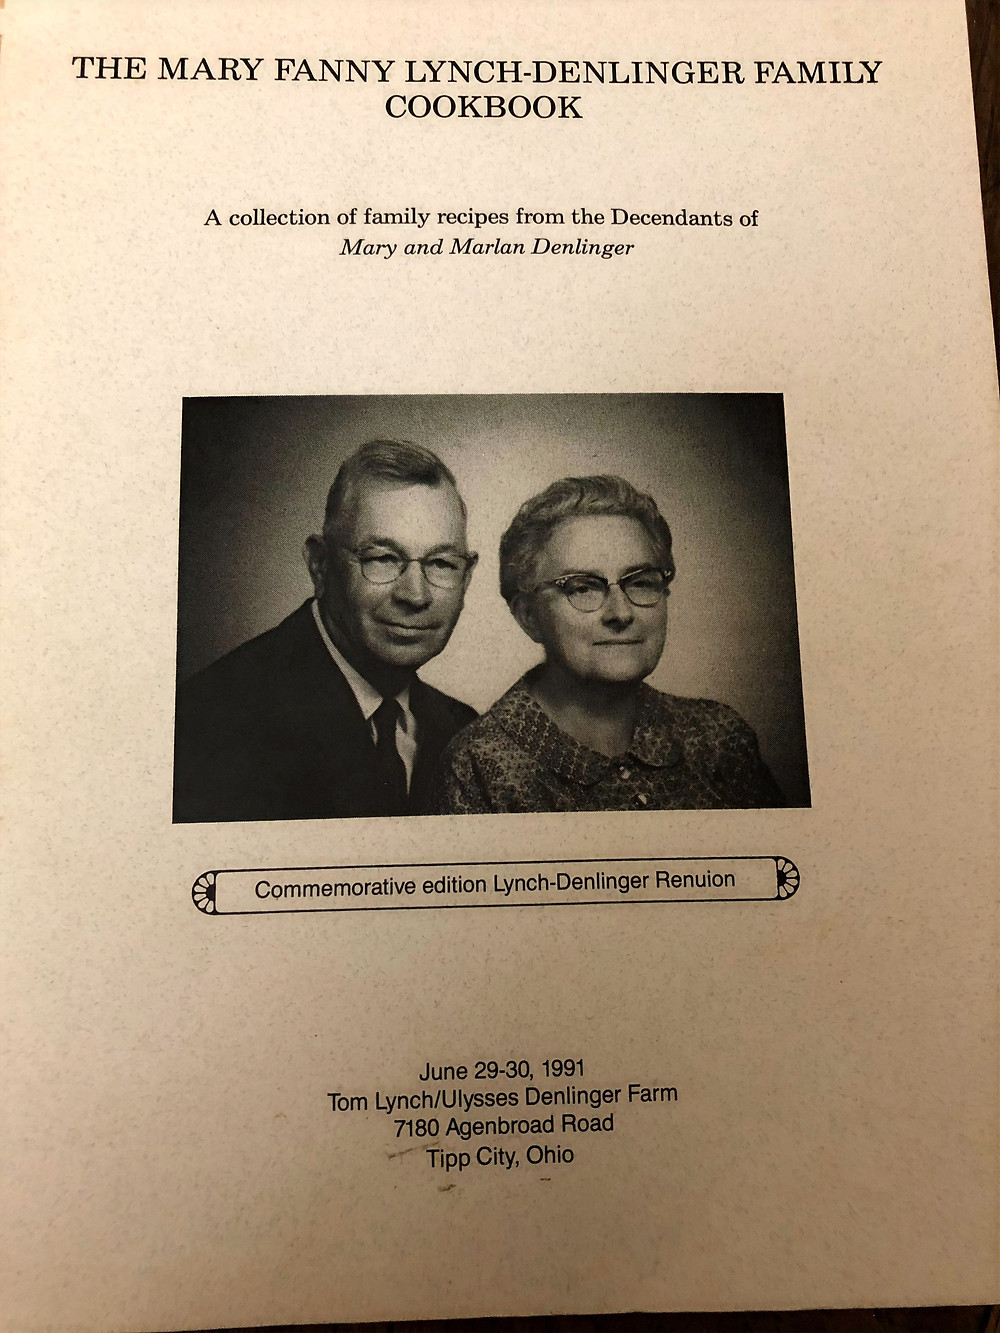 The Mary Fanny Lynch-Denlinger Family Cookbook, circa 1991